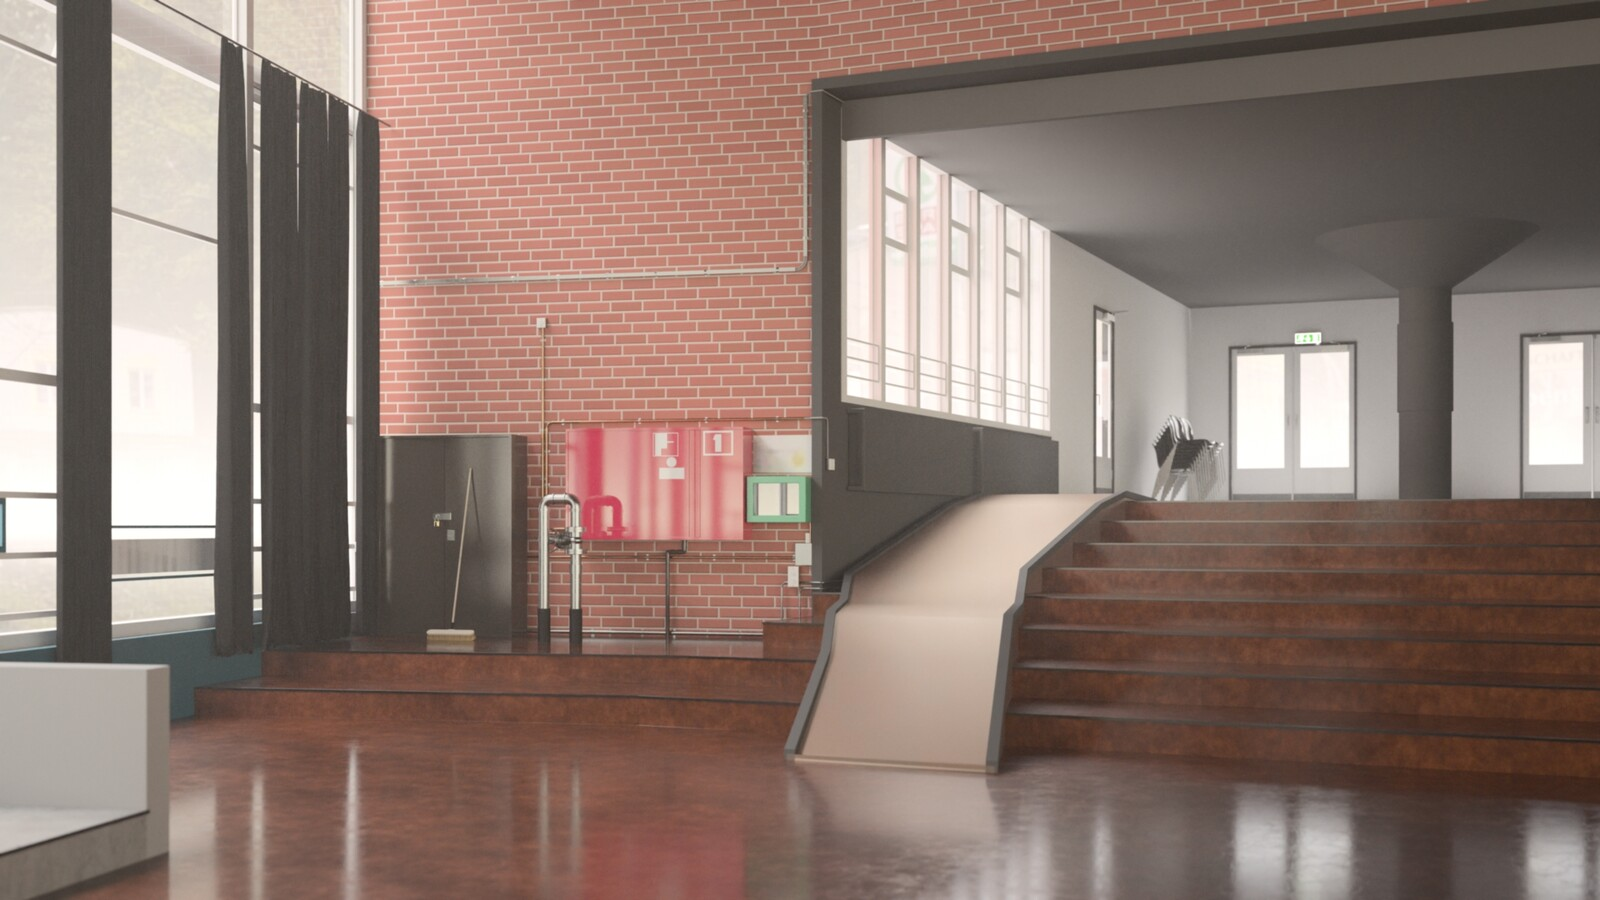 SketchUp 2021 + Thea Render V3 Broedplaats LELY (The Lely Incubator) Auditorium Amsterdam Showroom Final-Scene 11 16m48s HD1080 1536sp